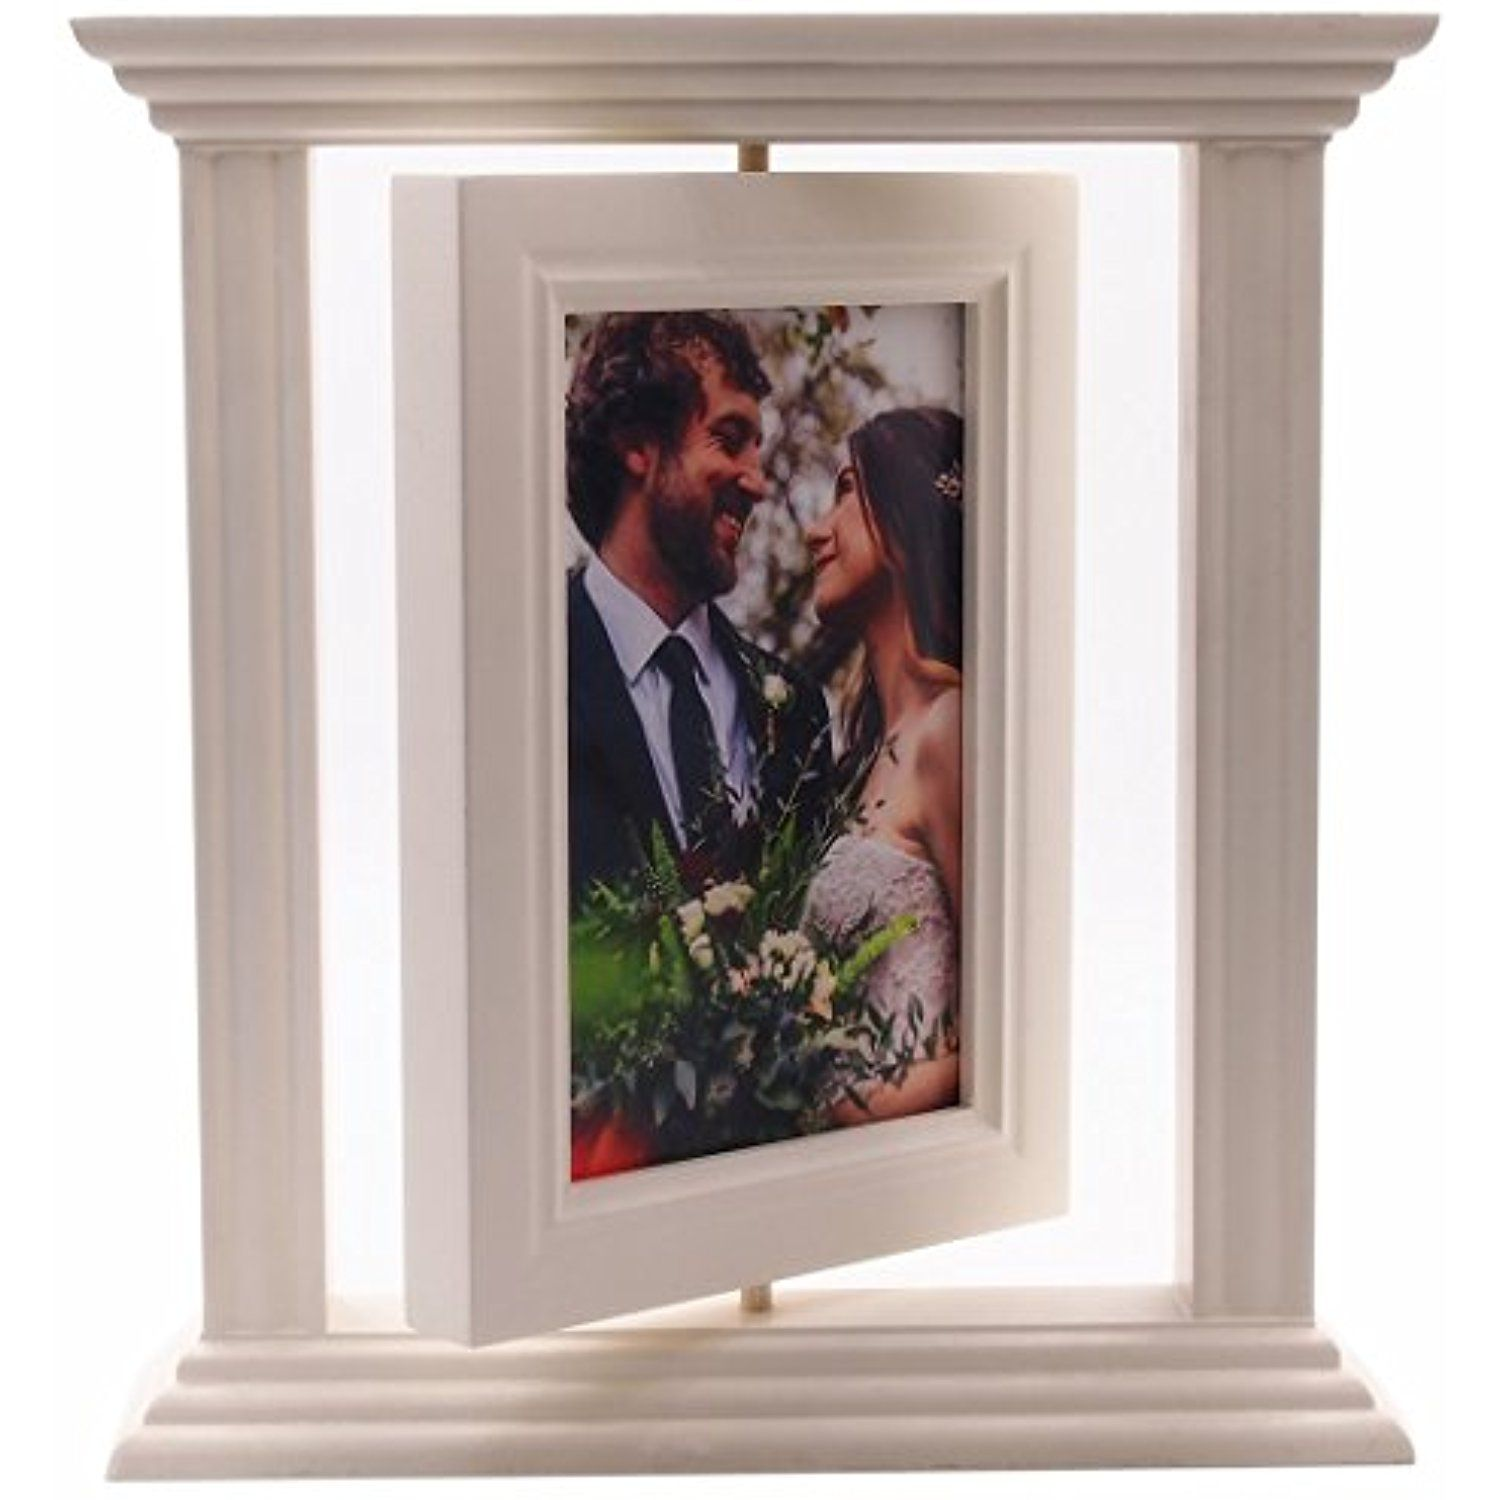 Yomee 2 Sided Rotatable White Picture Frame With Gl Front Solid Wood Double 4x6 Inch Roman Style Antiquated Stands Vertically Table Top Or